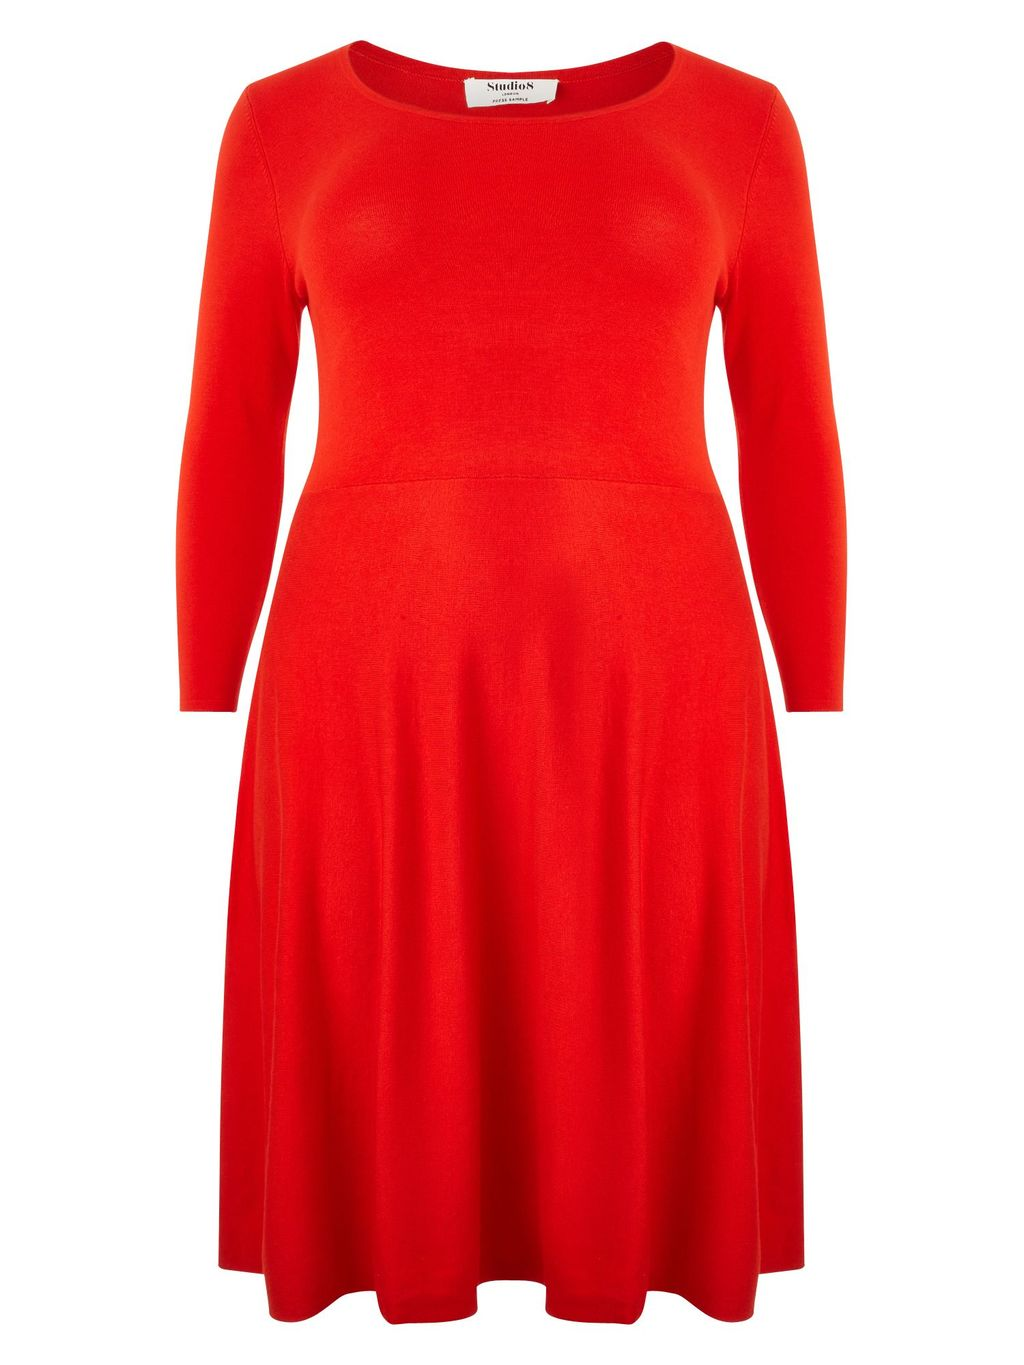 Camille Dress, Pink - style: jumper dress; neckline: round neck; pattern: plain; predominant colour: true red; occasions: casual; length: just above the knee; fit: body skimming; fibres: viscose/rayon - stretch; sleeve length: 3/4 length; sleeve style: standard; pattern type: fabric; texture group: jersey - stretchy/drapey; season: a/w 2015; wardrobe: highlight